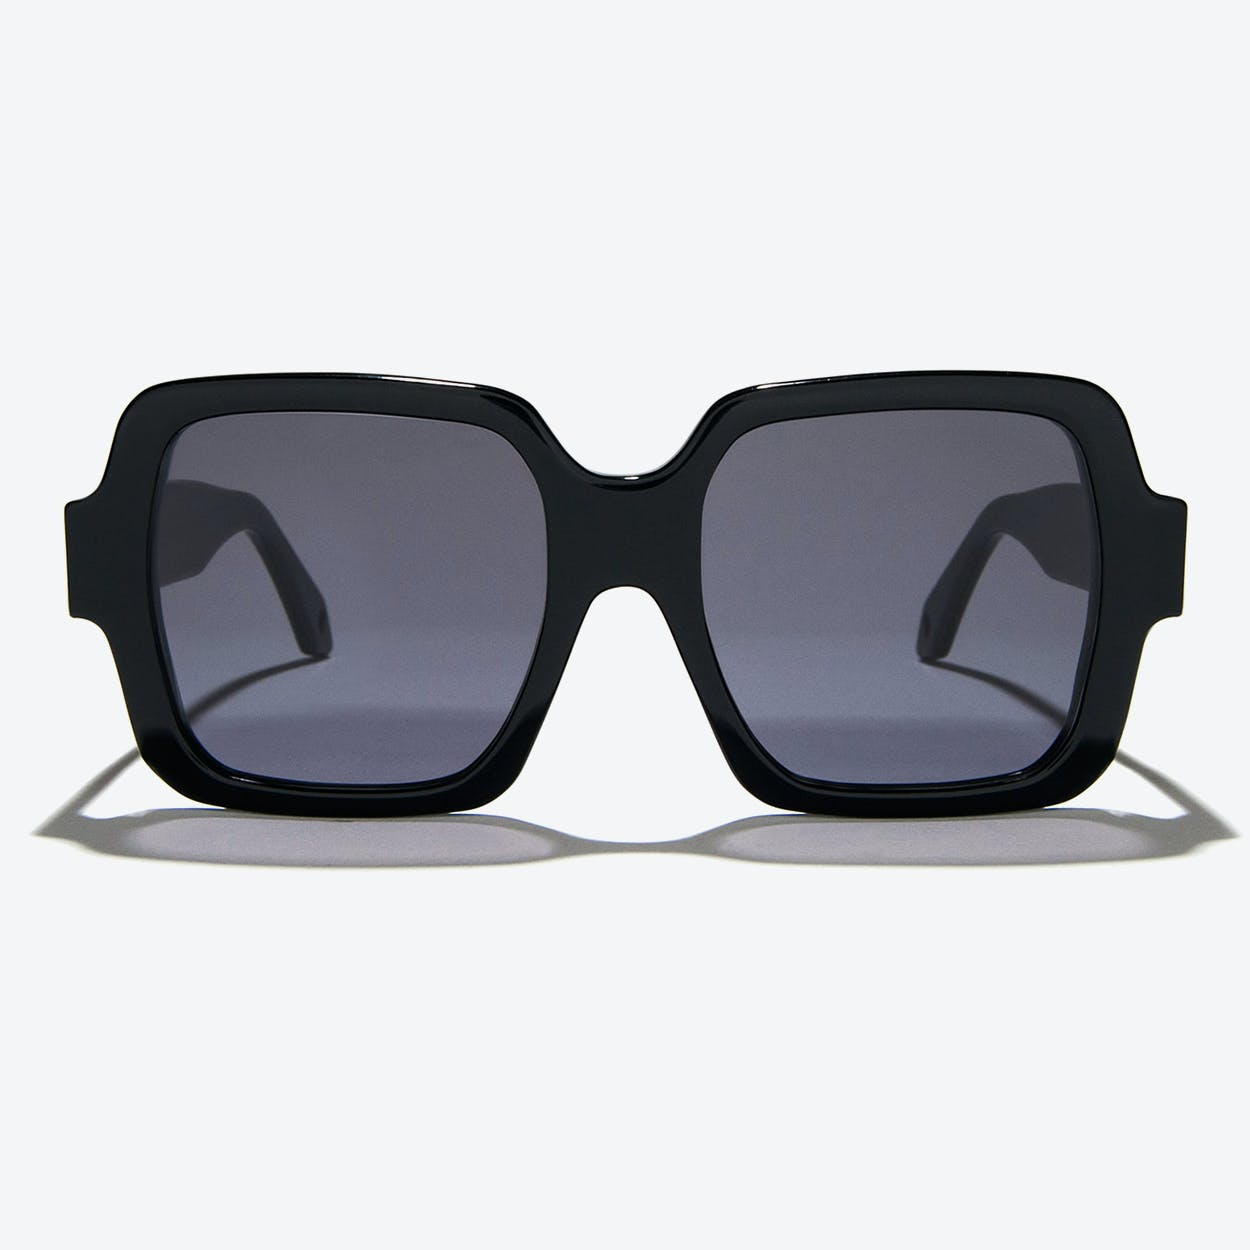 Hydra Sunglasses in Black